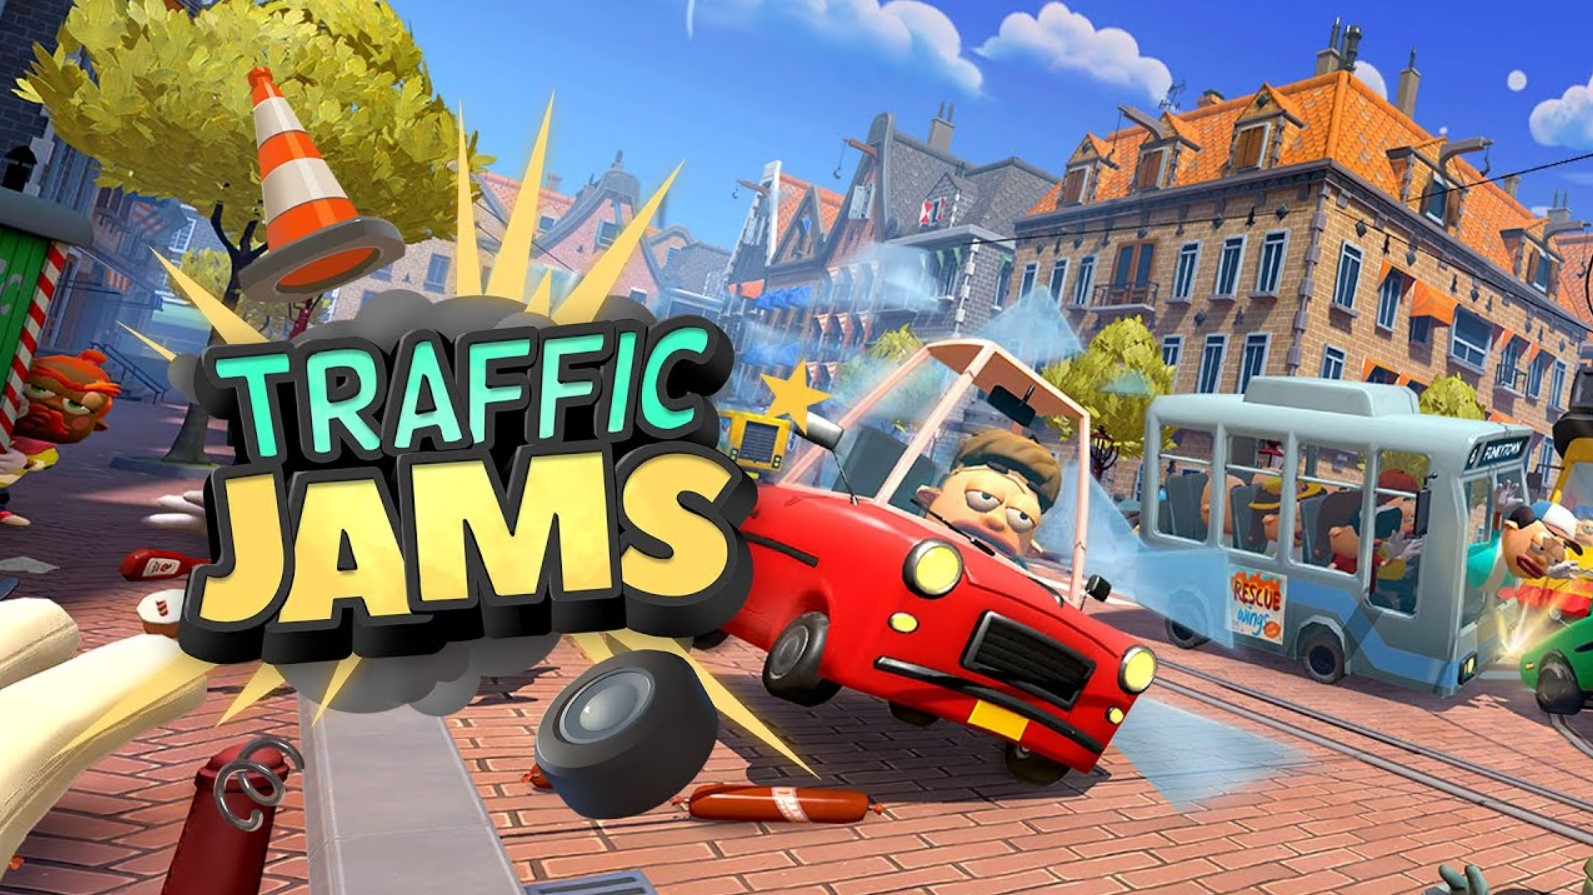 Traffic Jams Free Download Game Full Edition Direct Link